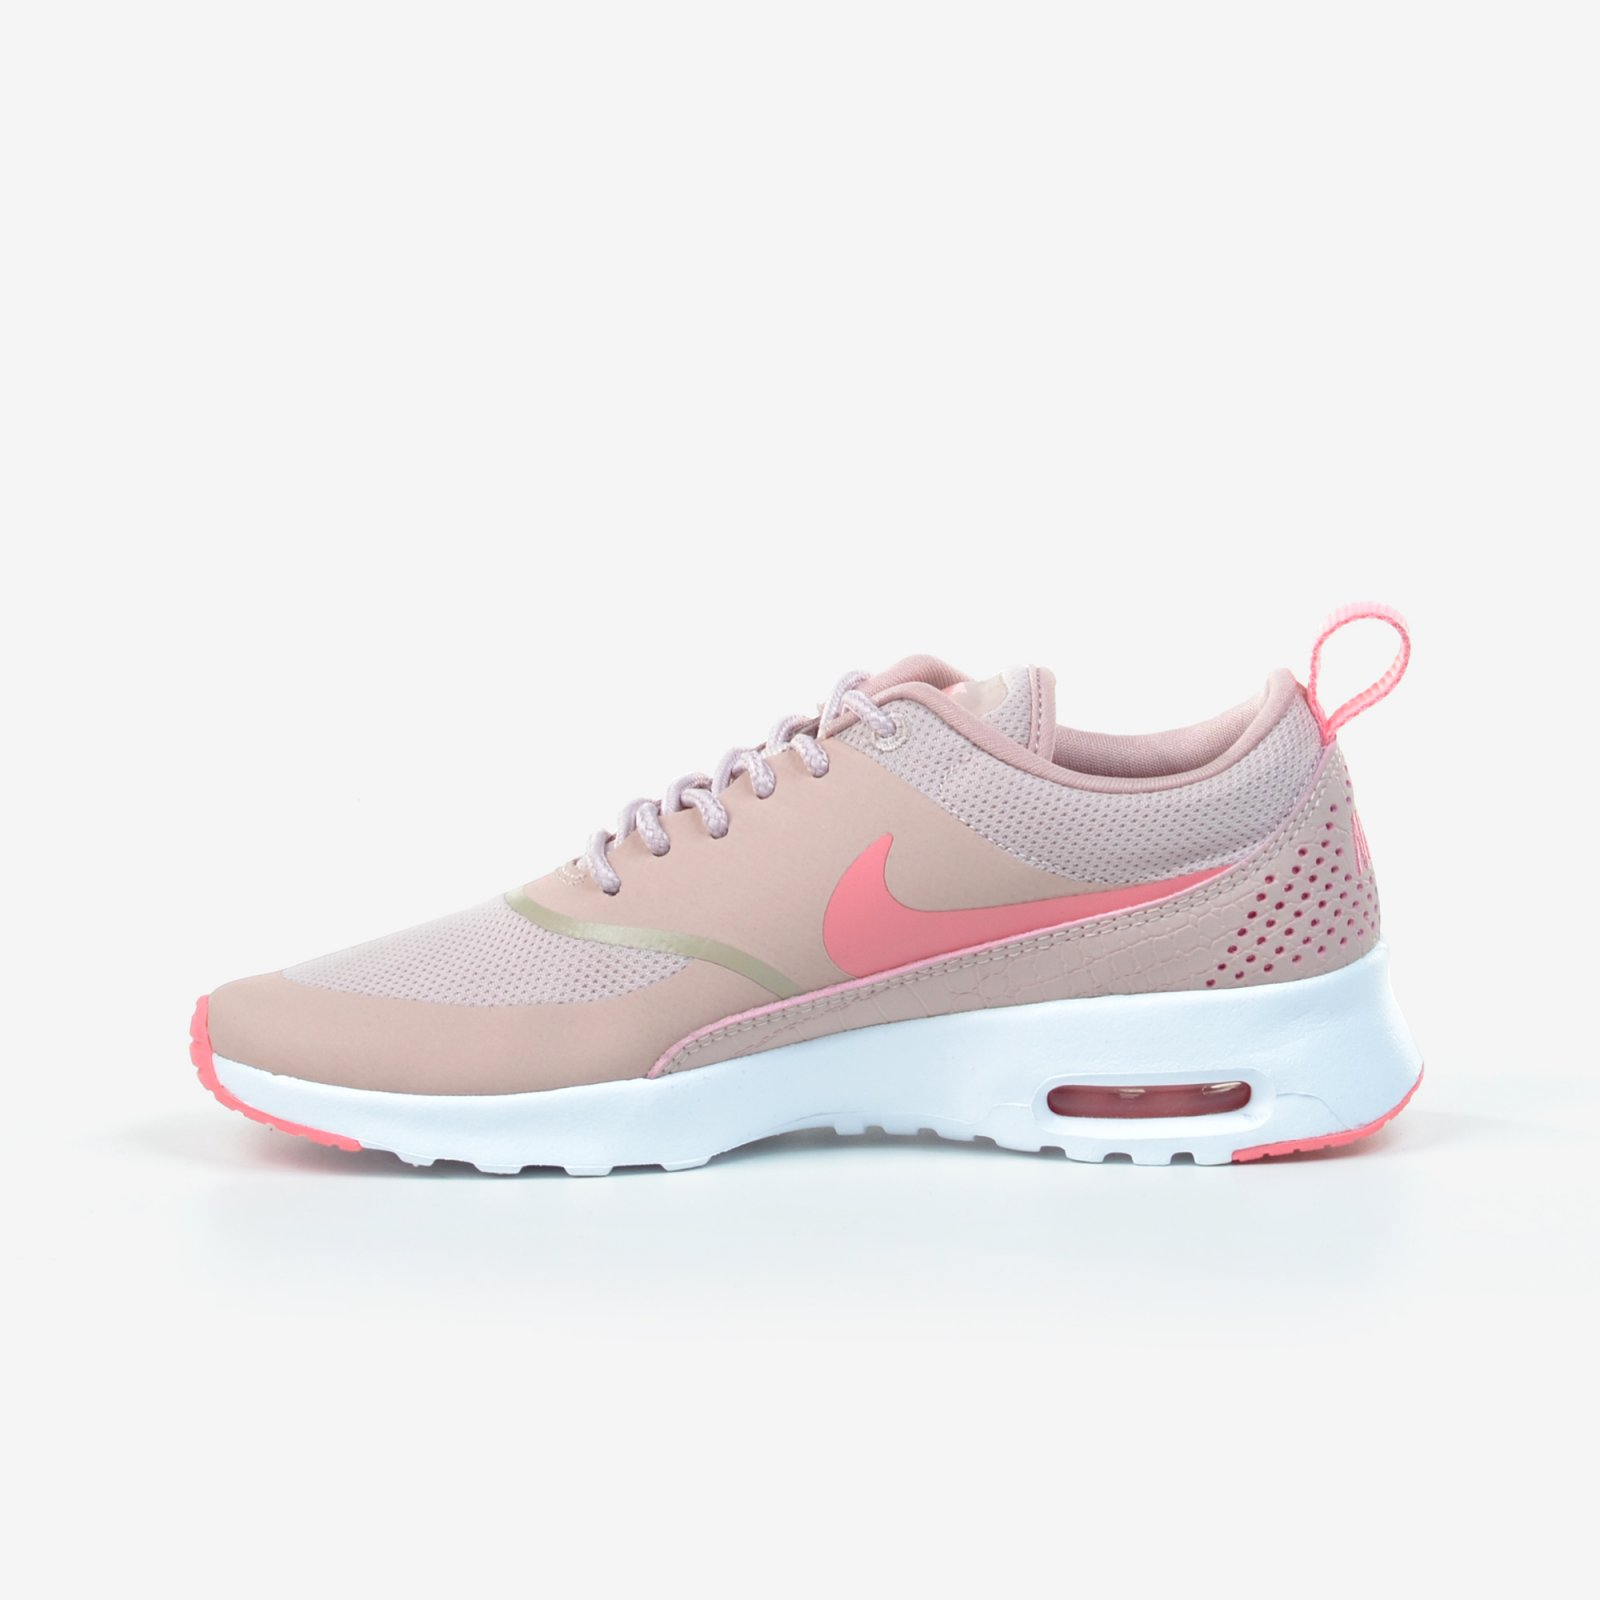 official photos 20b40 984cc Nike Women s Air Max Thea Pink Oxford Melon Size 5.5 Running Shoes  599409-610. Nike